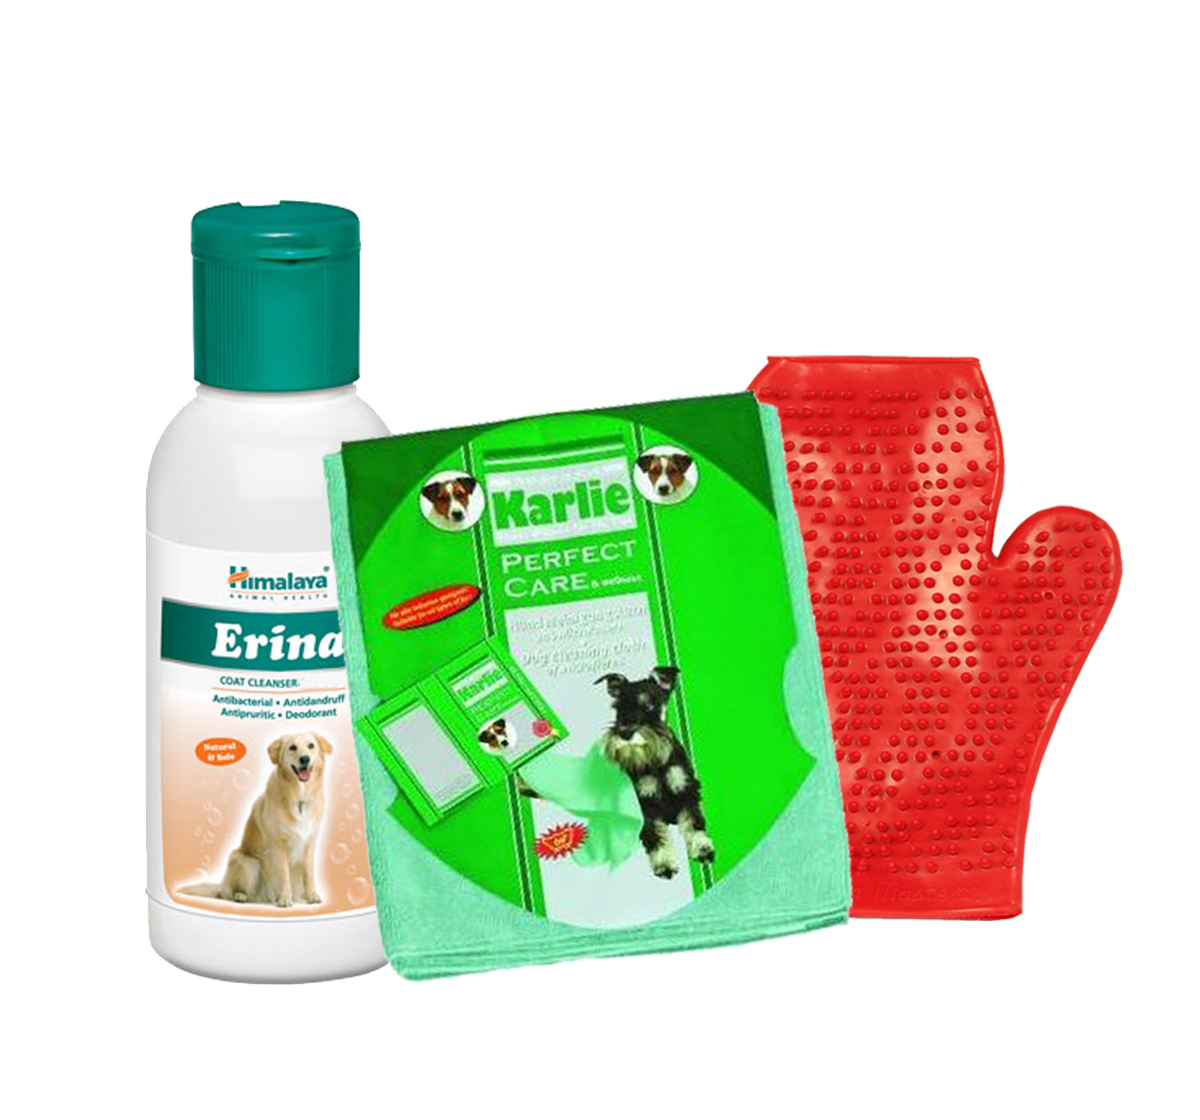 Himalaya Erina Coat Cleanser For Dog - 120 ml With Glove & Towel